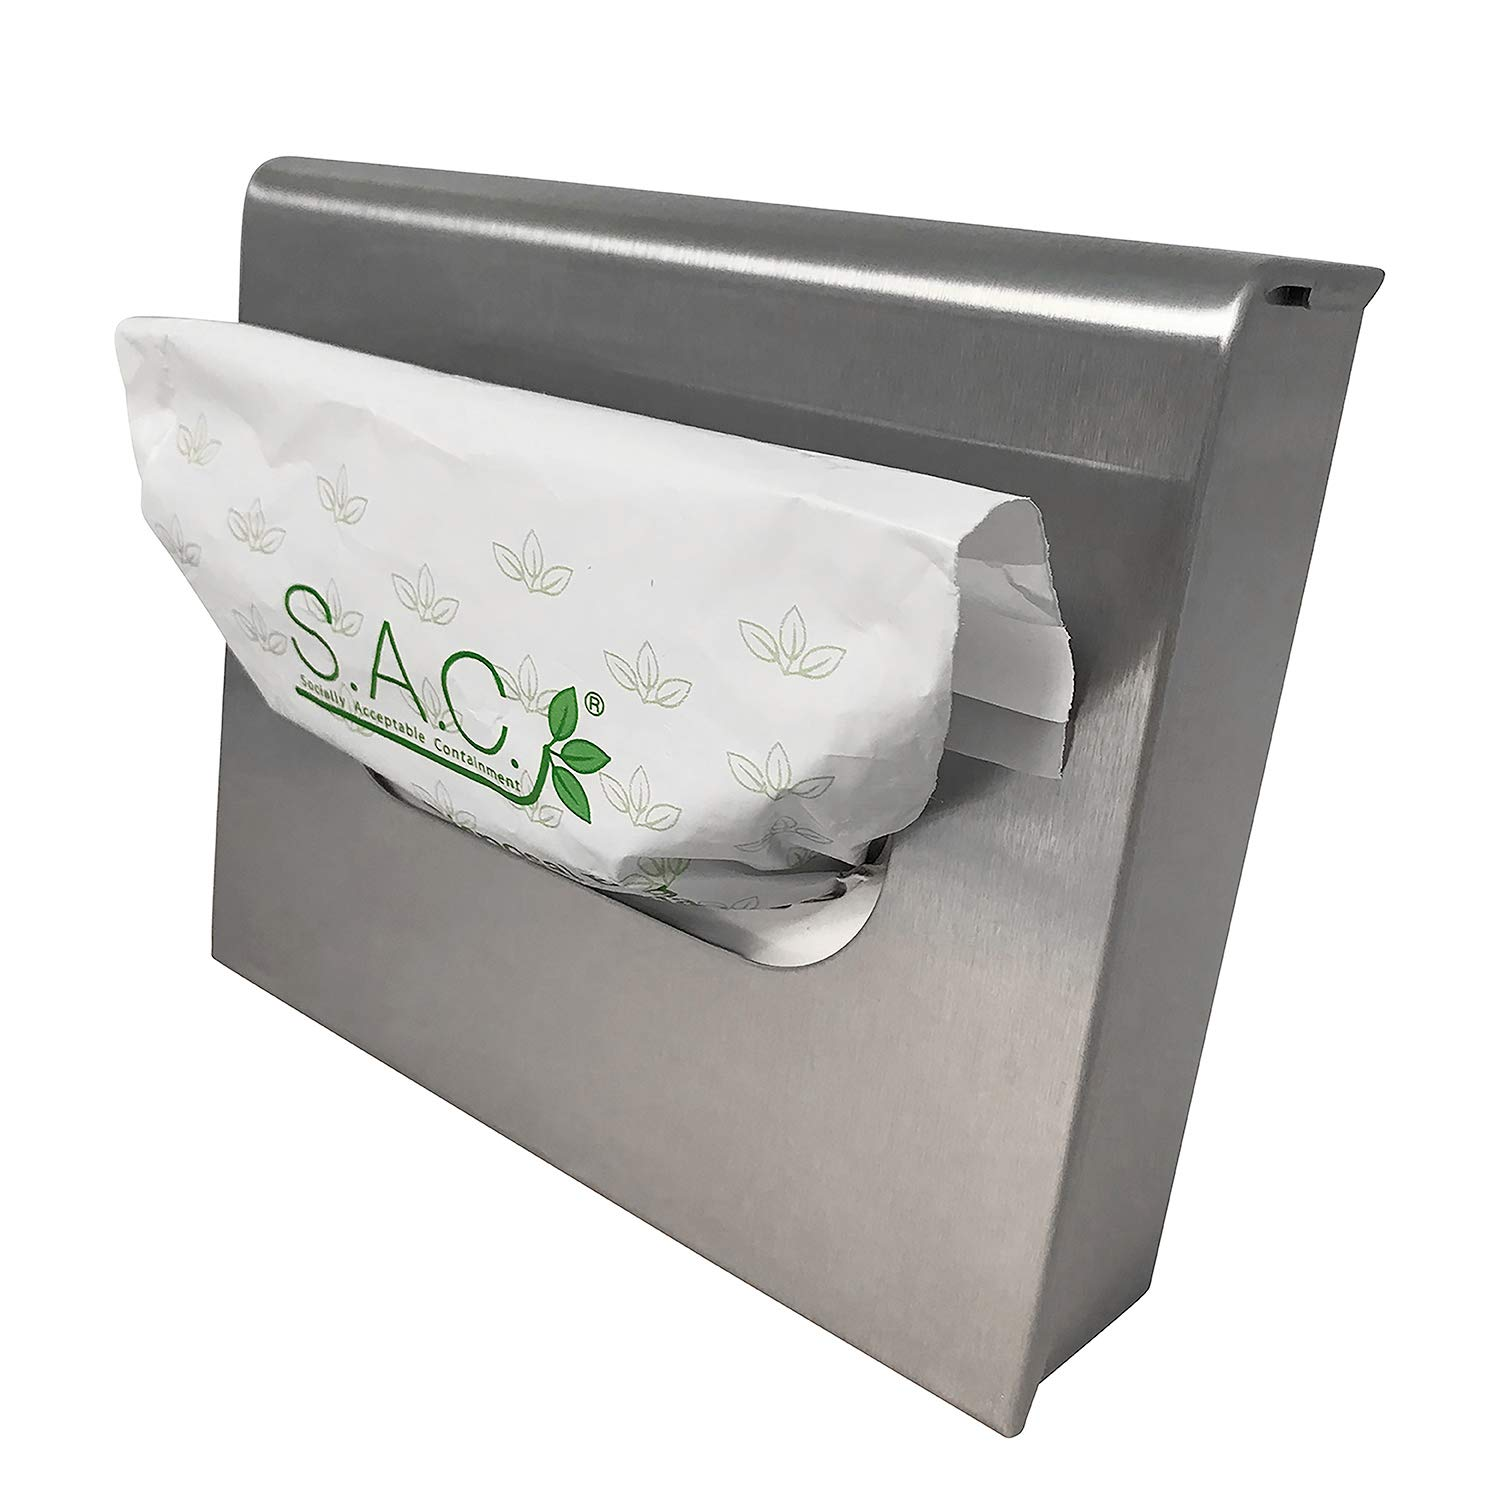 Sanitary Napkin Receptacle, Surface Mounted, with Liners, Courtesy Disposal Bags and Dispenser, Steel (Stainless Steel) by S.A.C. Socially Acceptable Containment (Image #3)